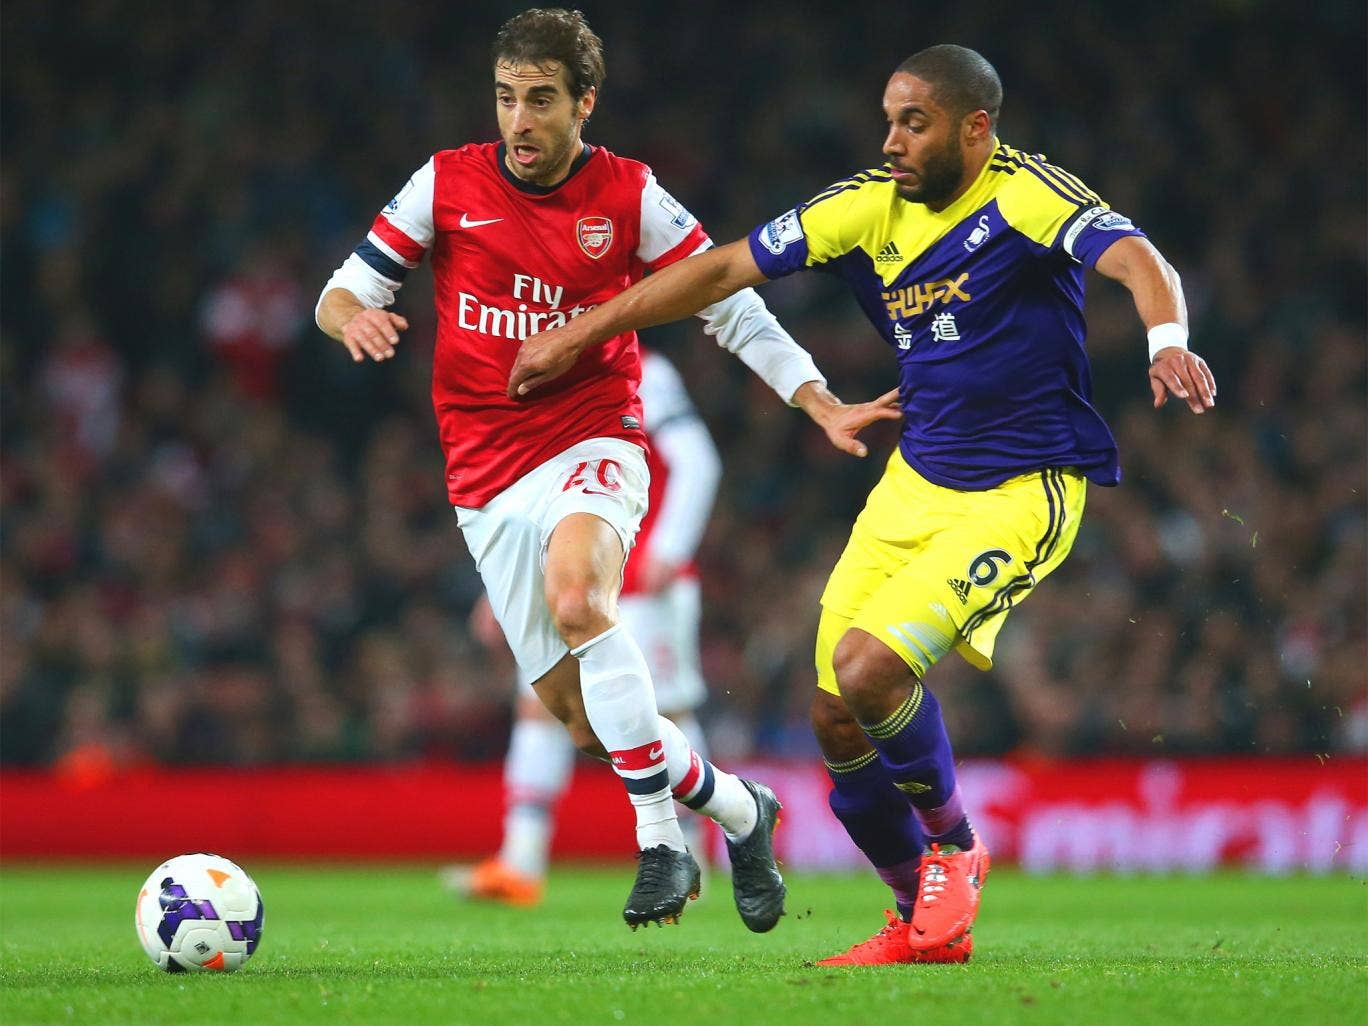 Mathieu Flamini (left) battles with Swansea's Ashley Williams on Tuesday